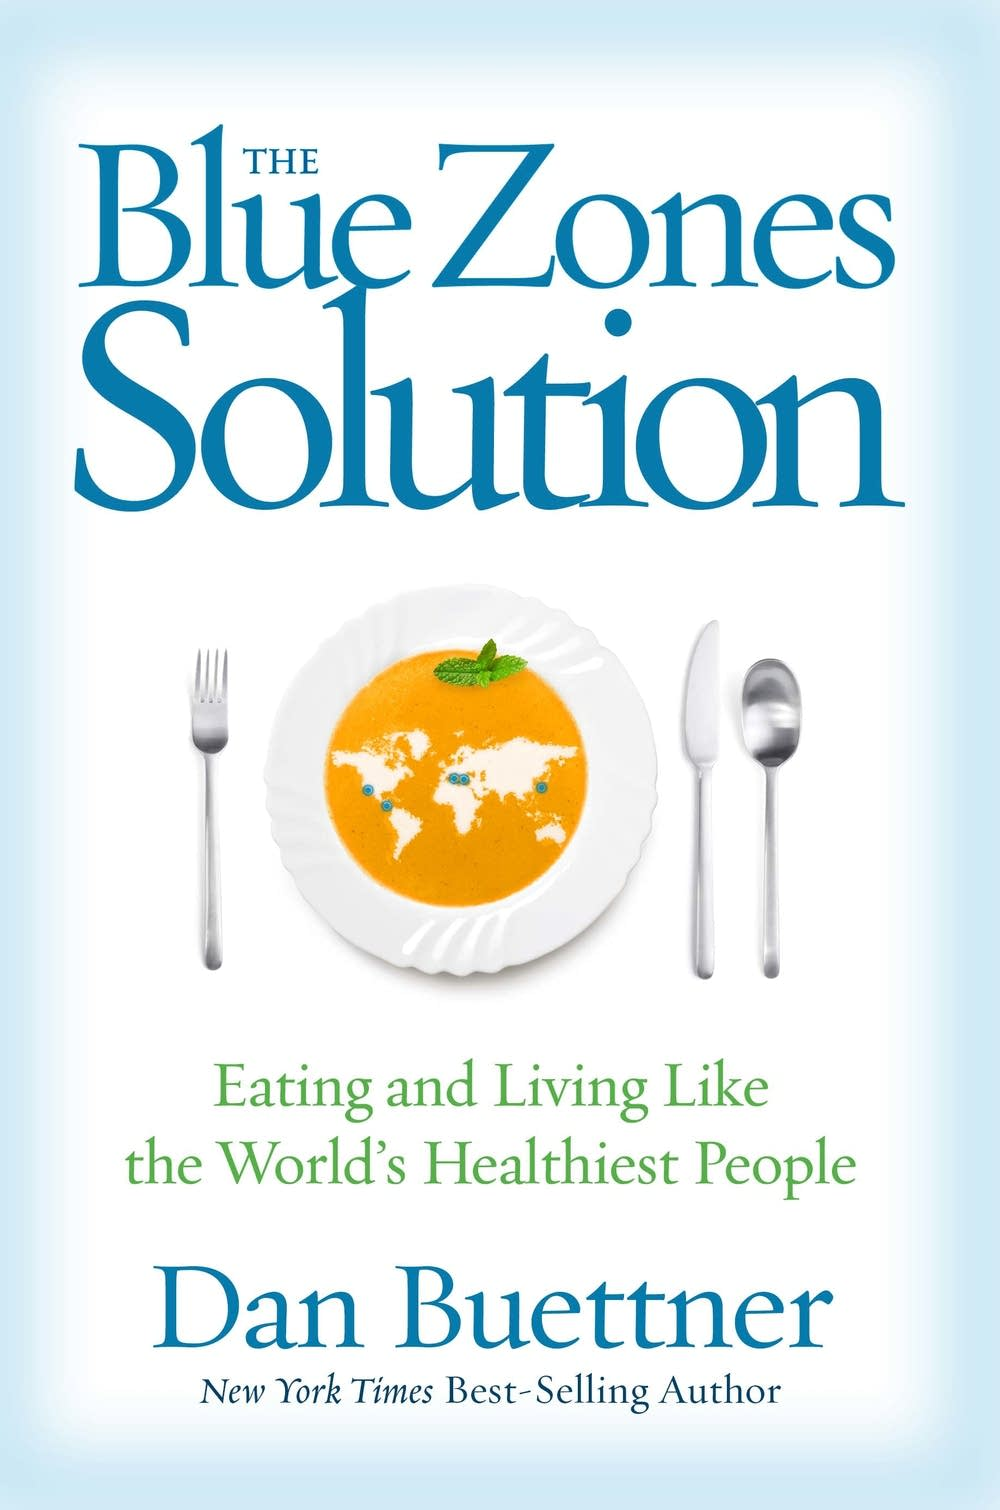 'The Blue Zones Solution'